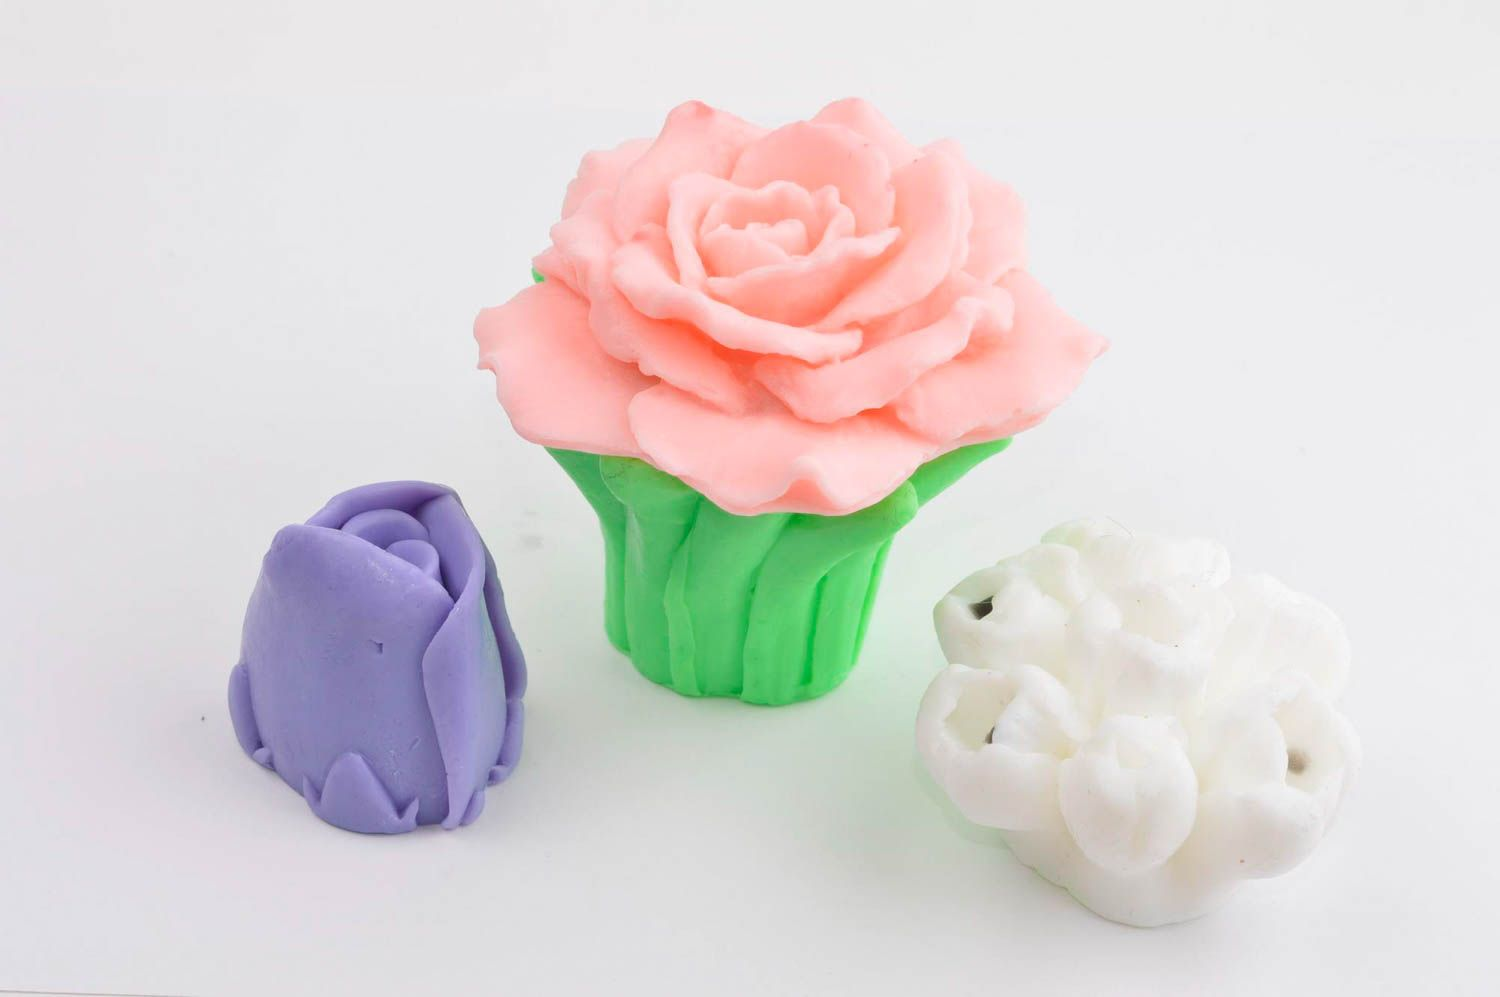 Handmade soap set natural cosmetics 4 flowers pieces natural soap gift idea photo 4